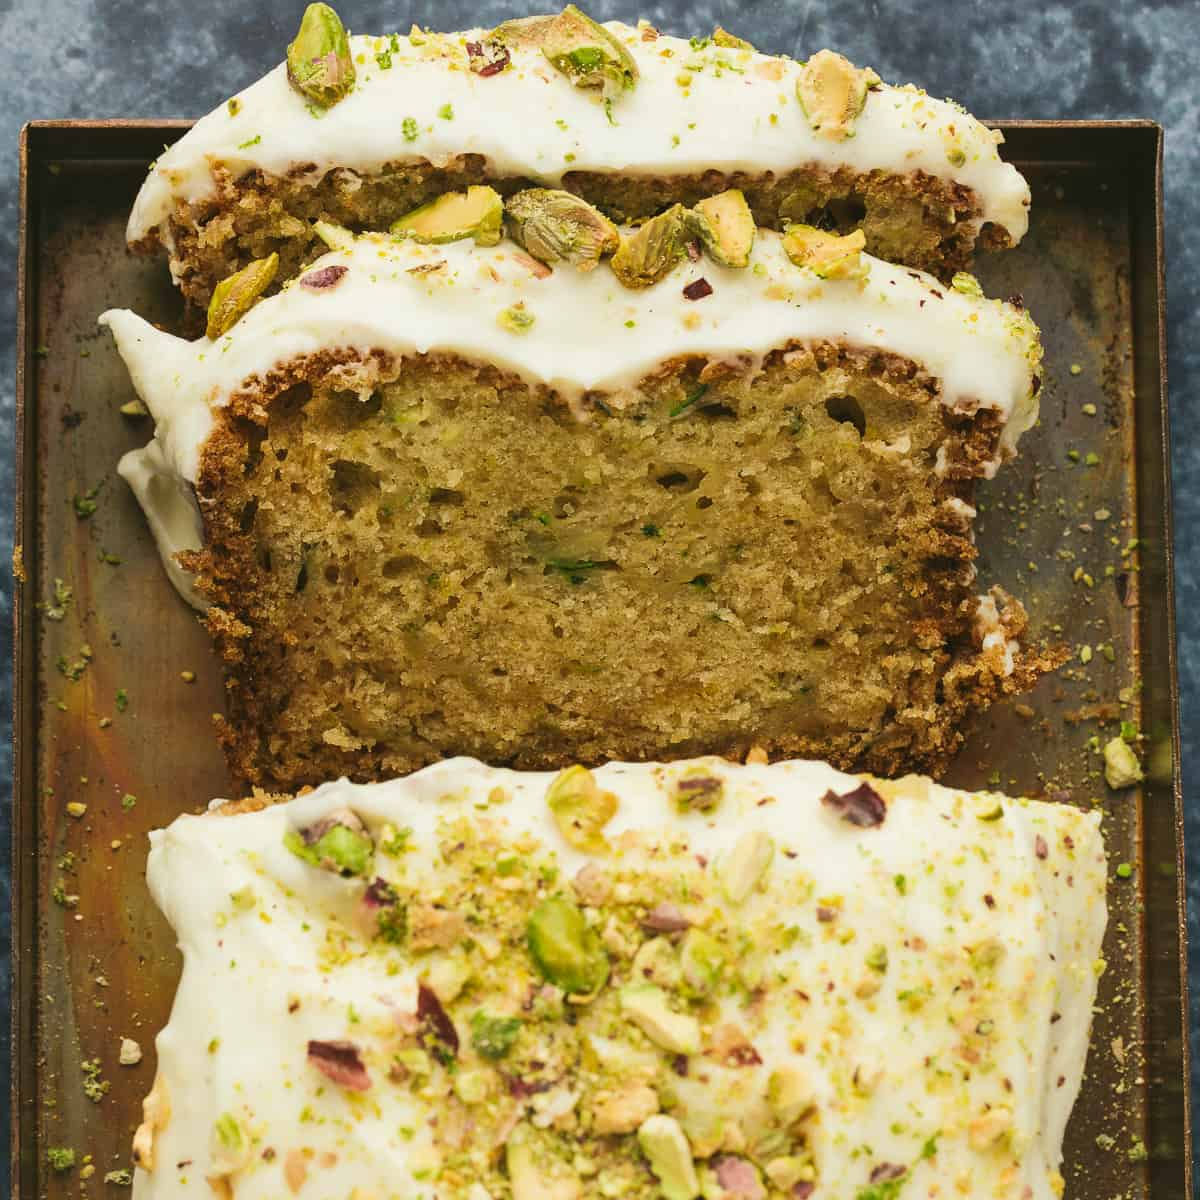 A courgette cake with two slices cut out of it.